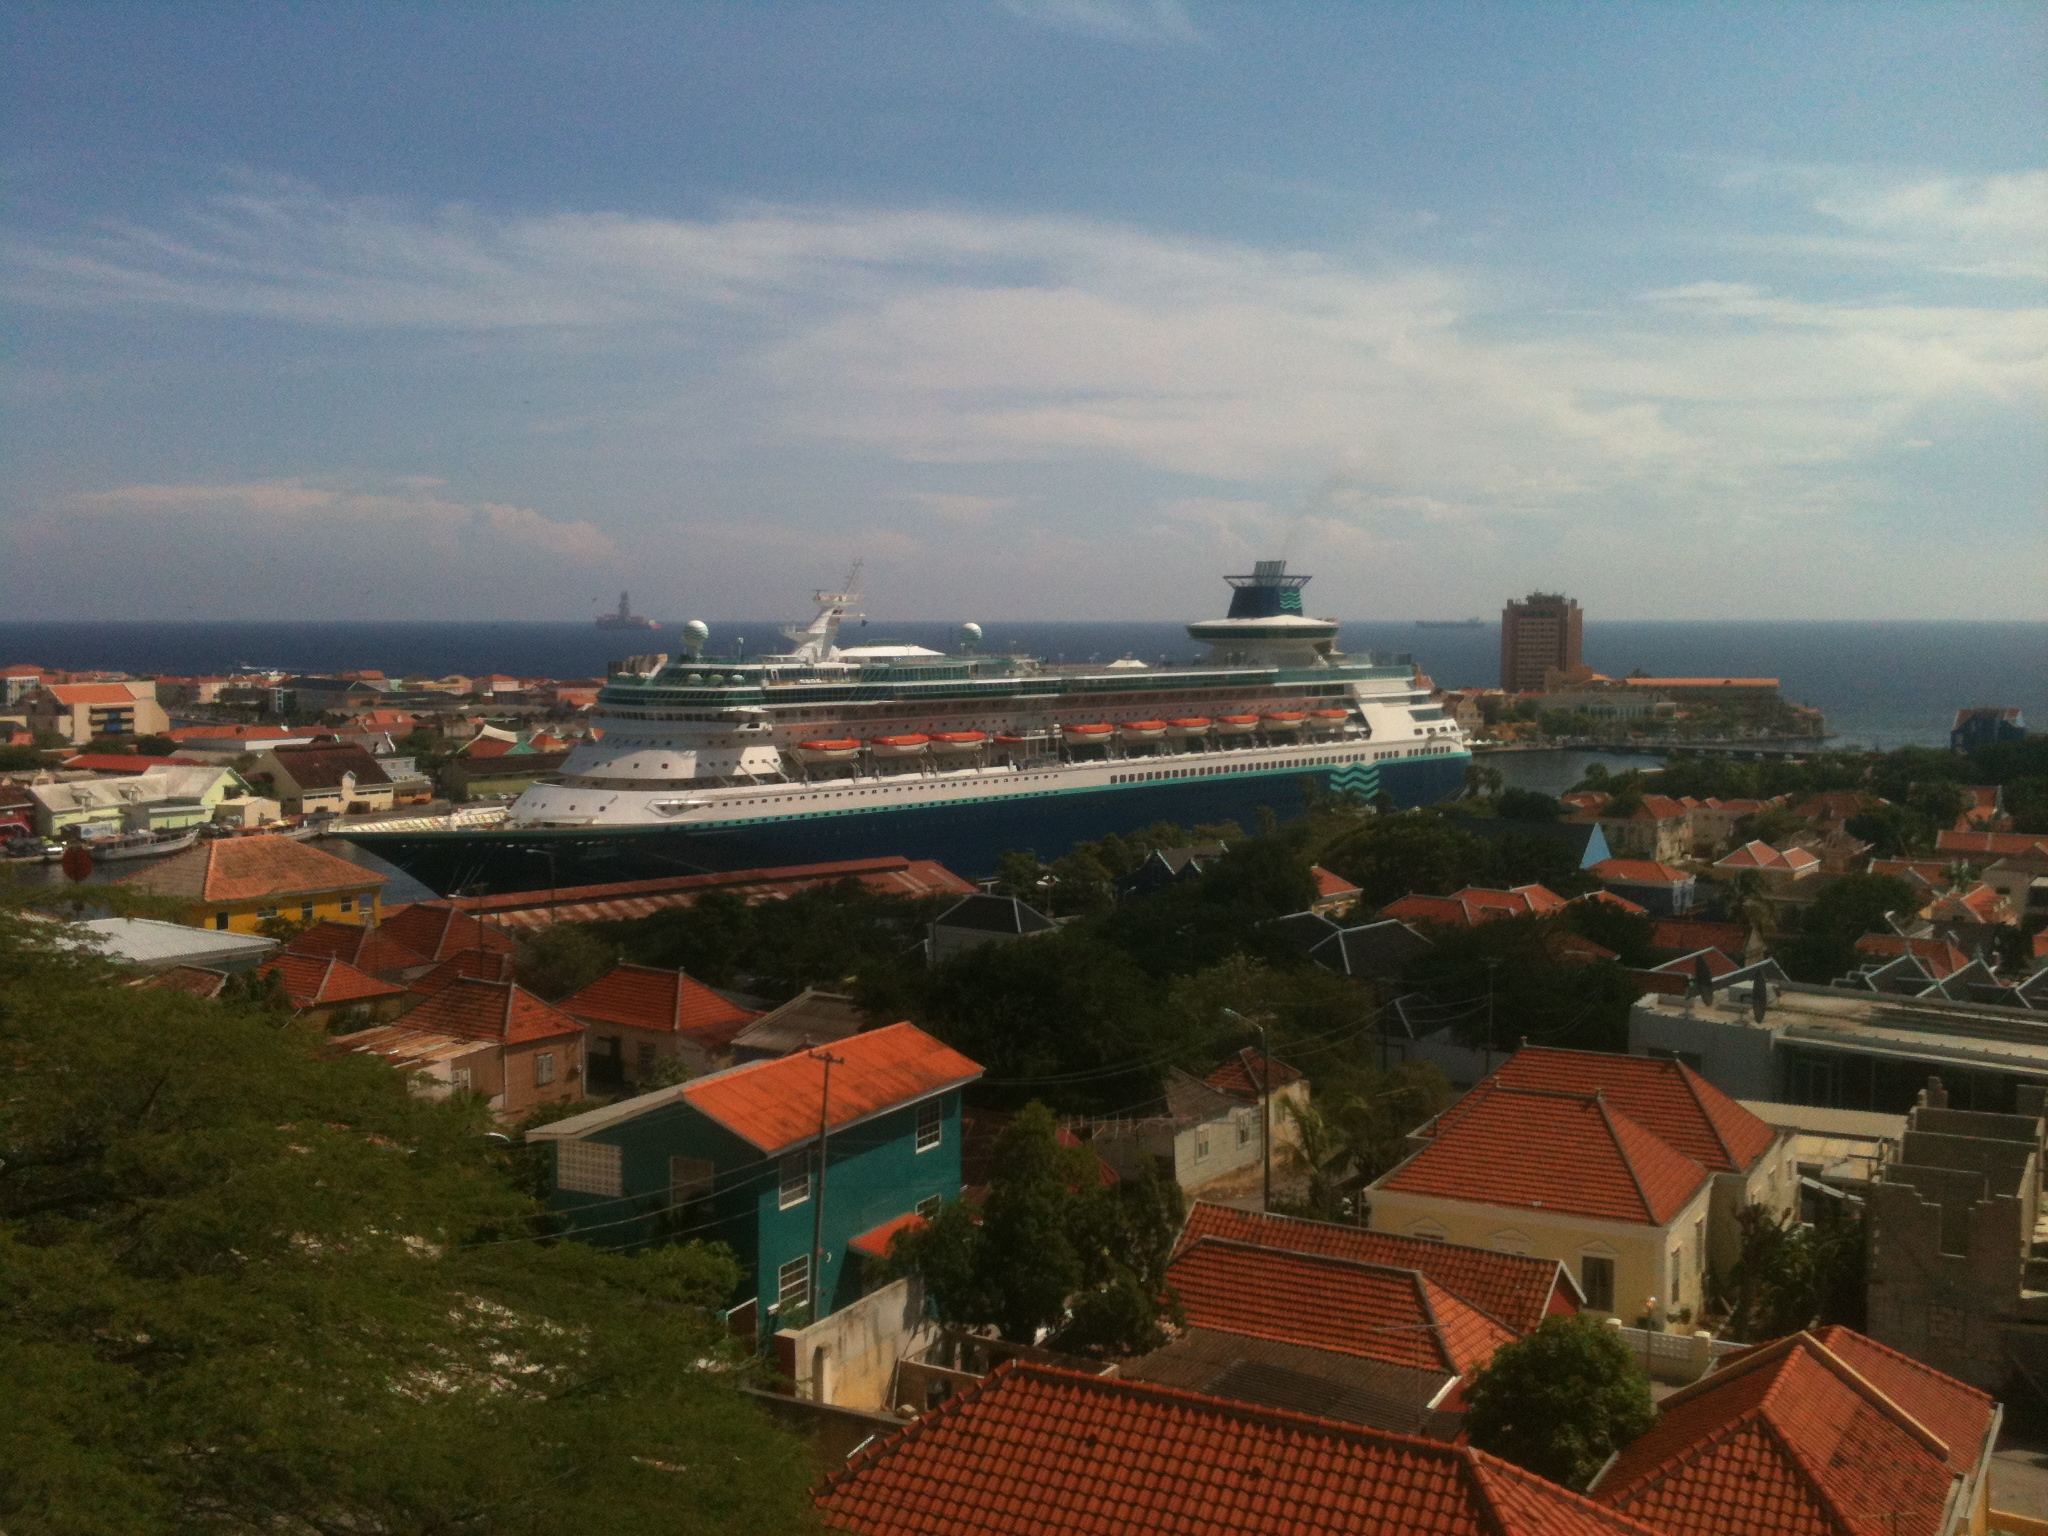 Cruise ship visiting Willemstad